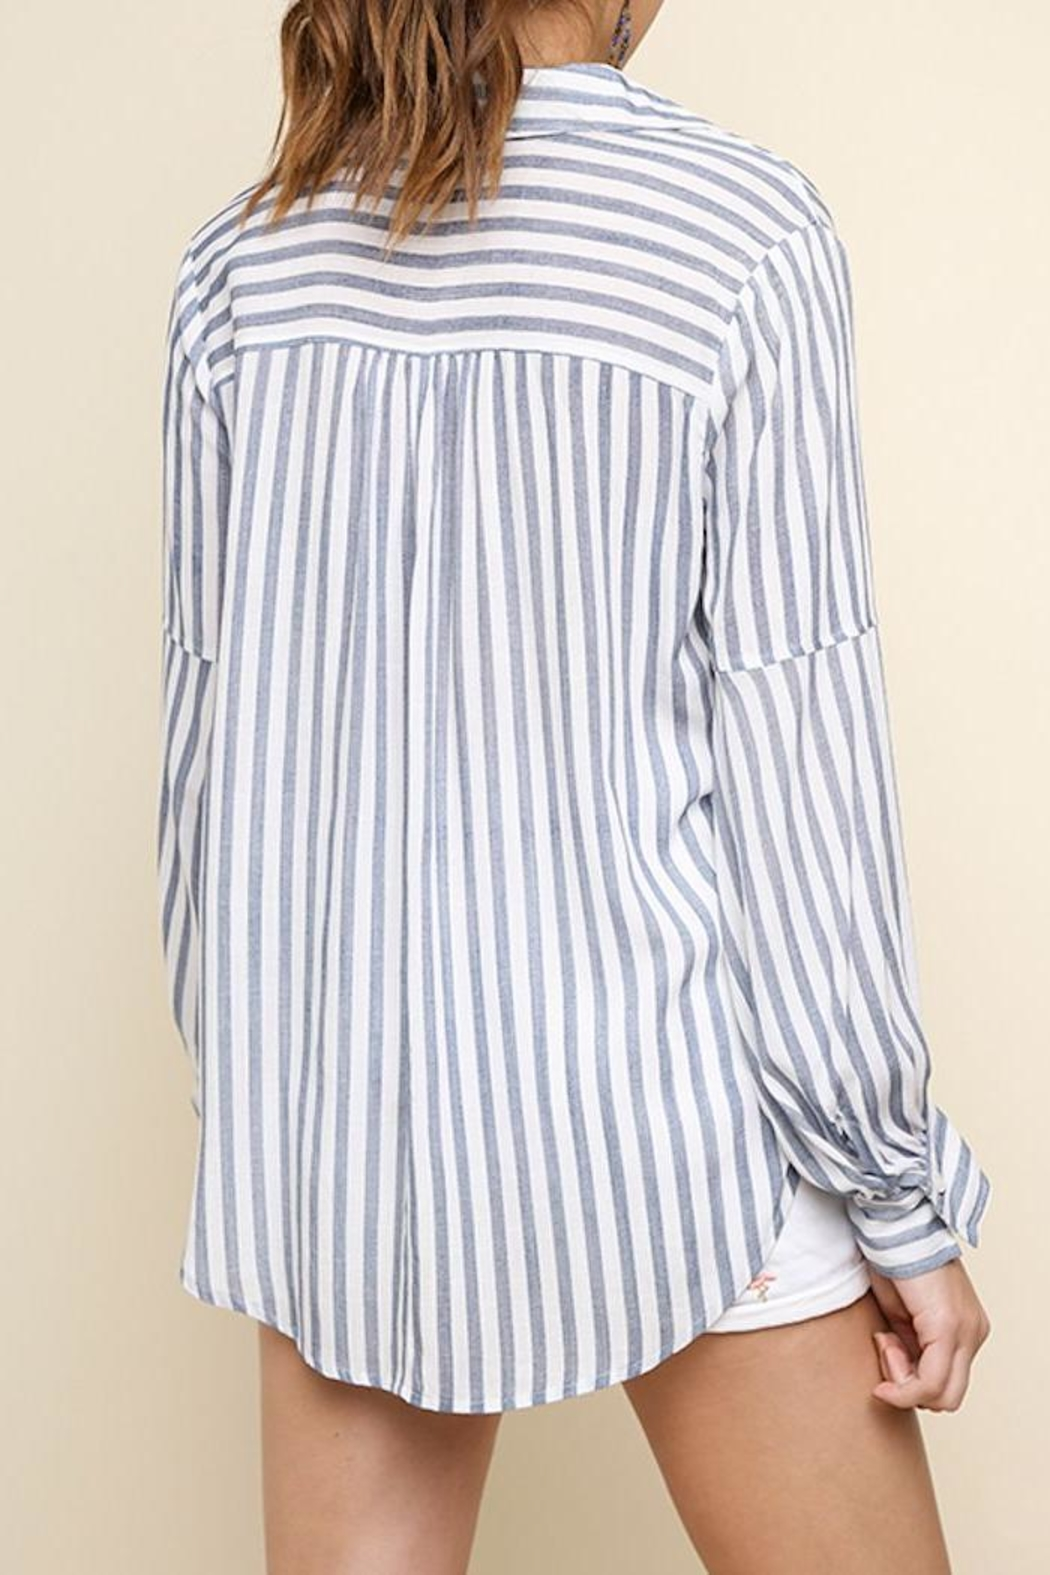 Umgee USA Striped Drawstring Top - Side Cropped Image